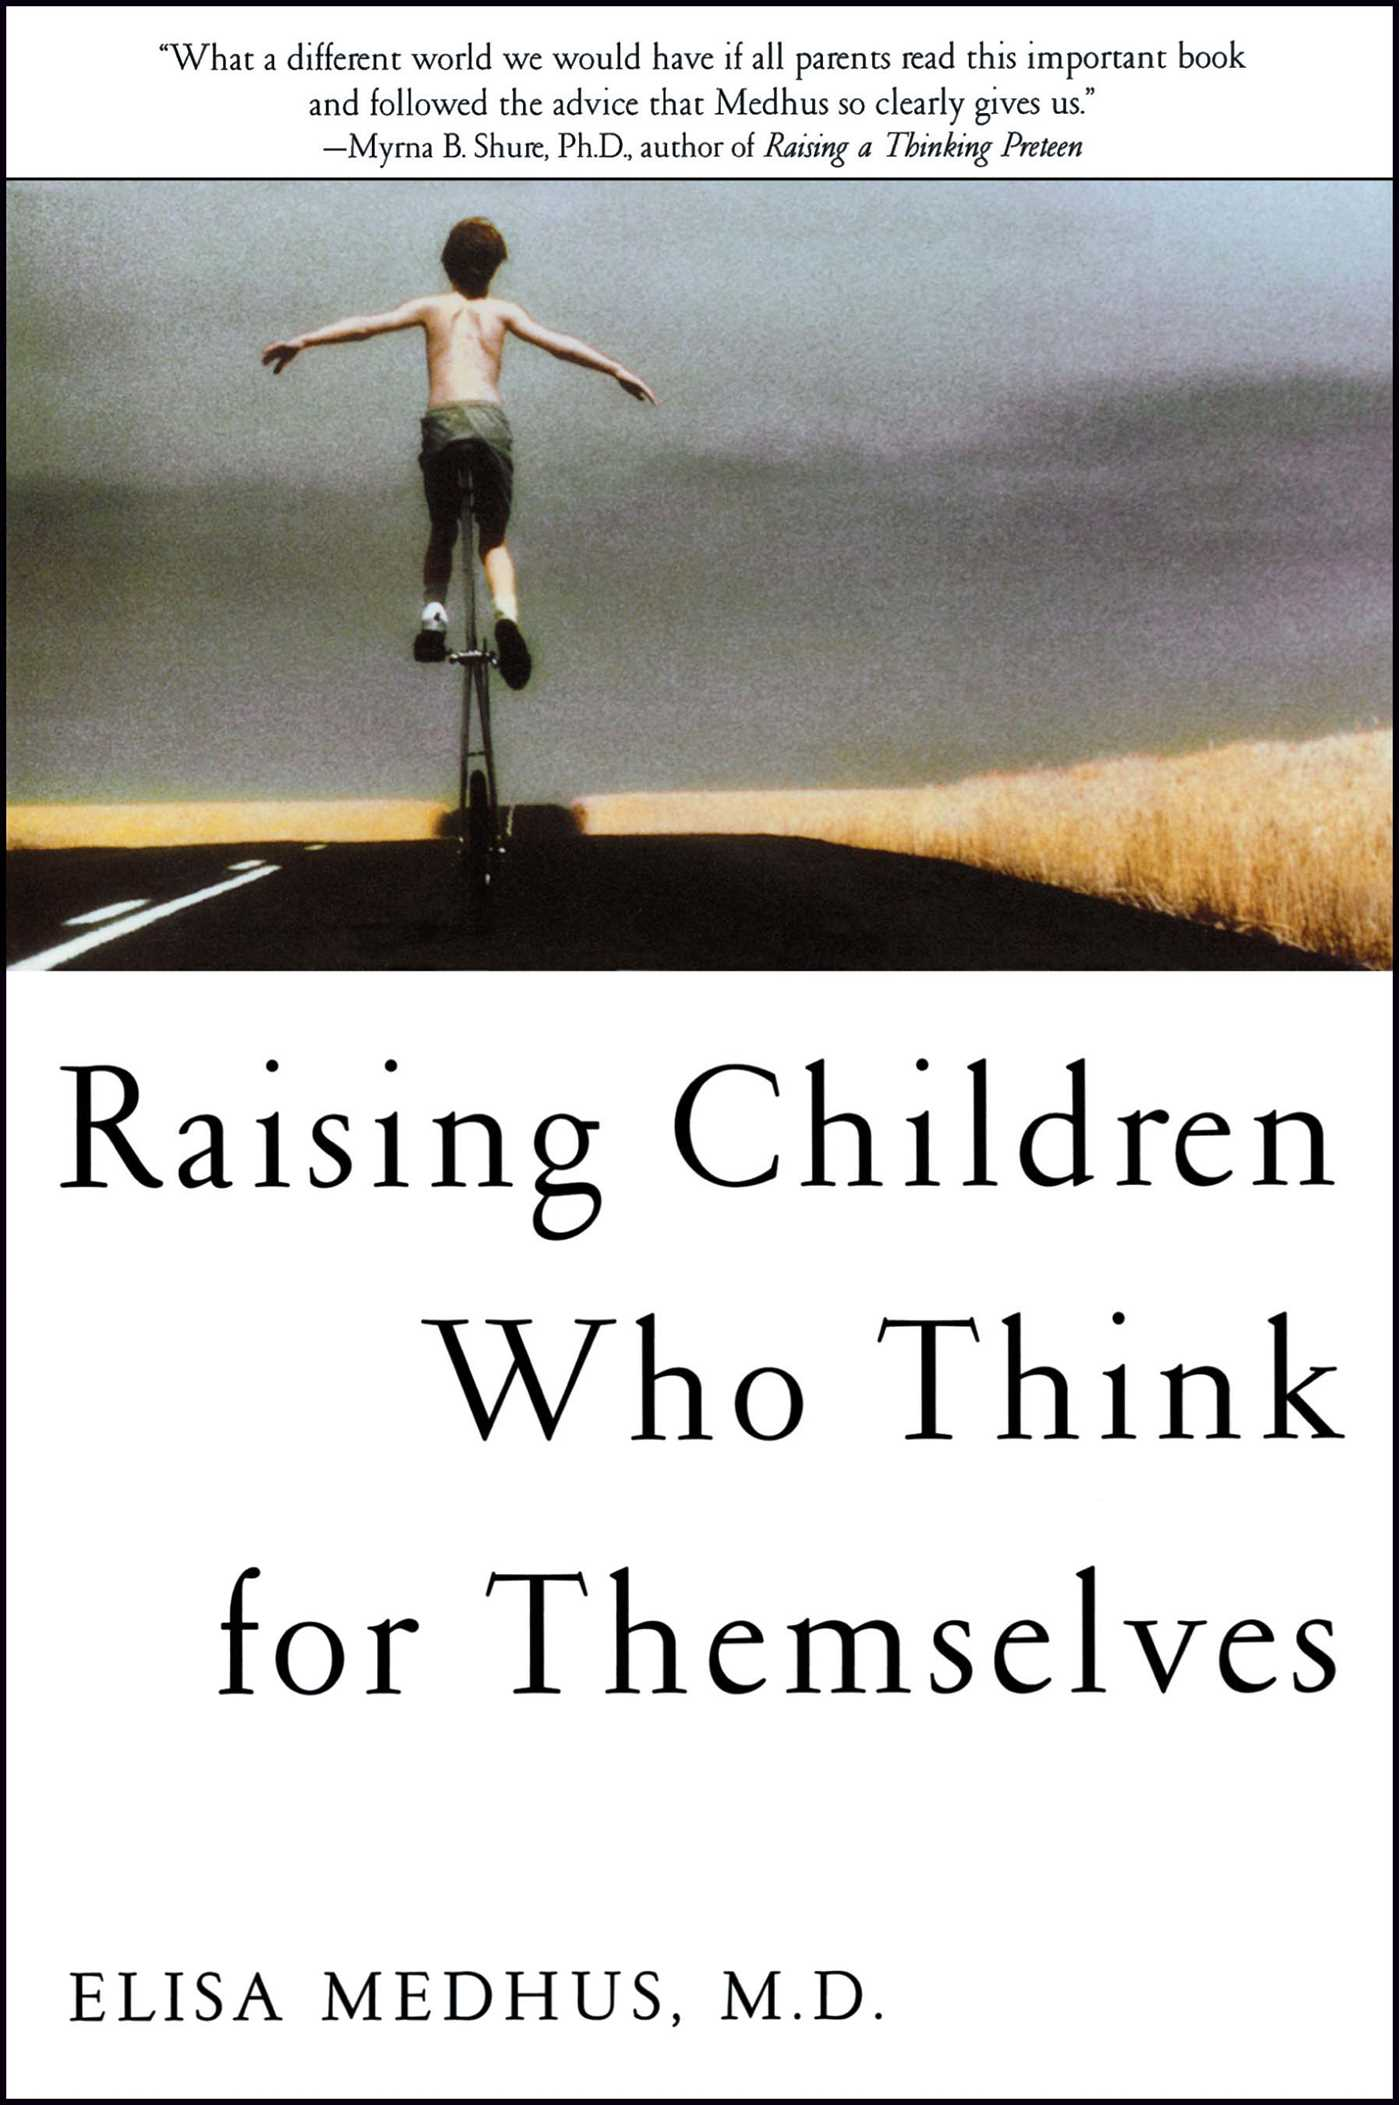 Raising children who think for themselves 9781582700472 hr